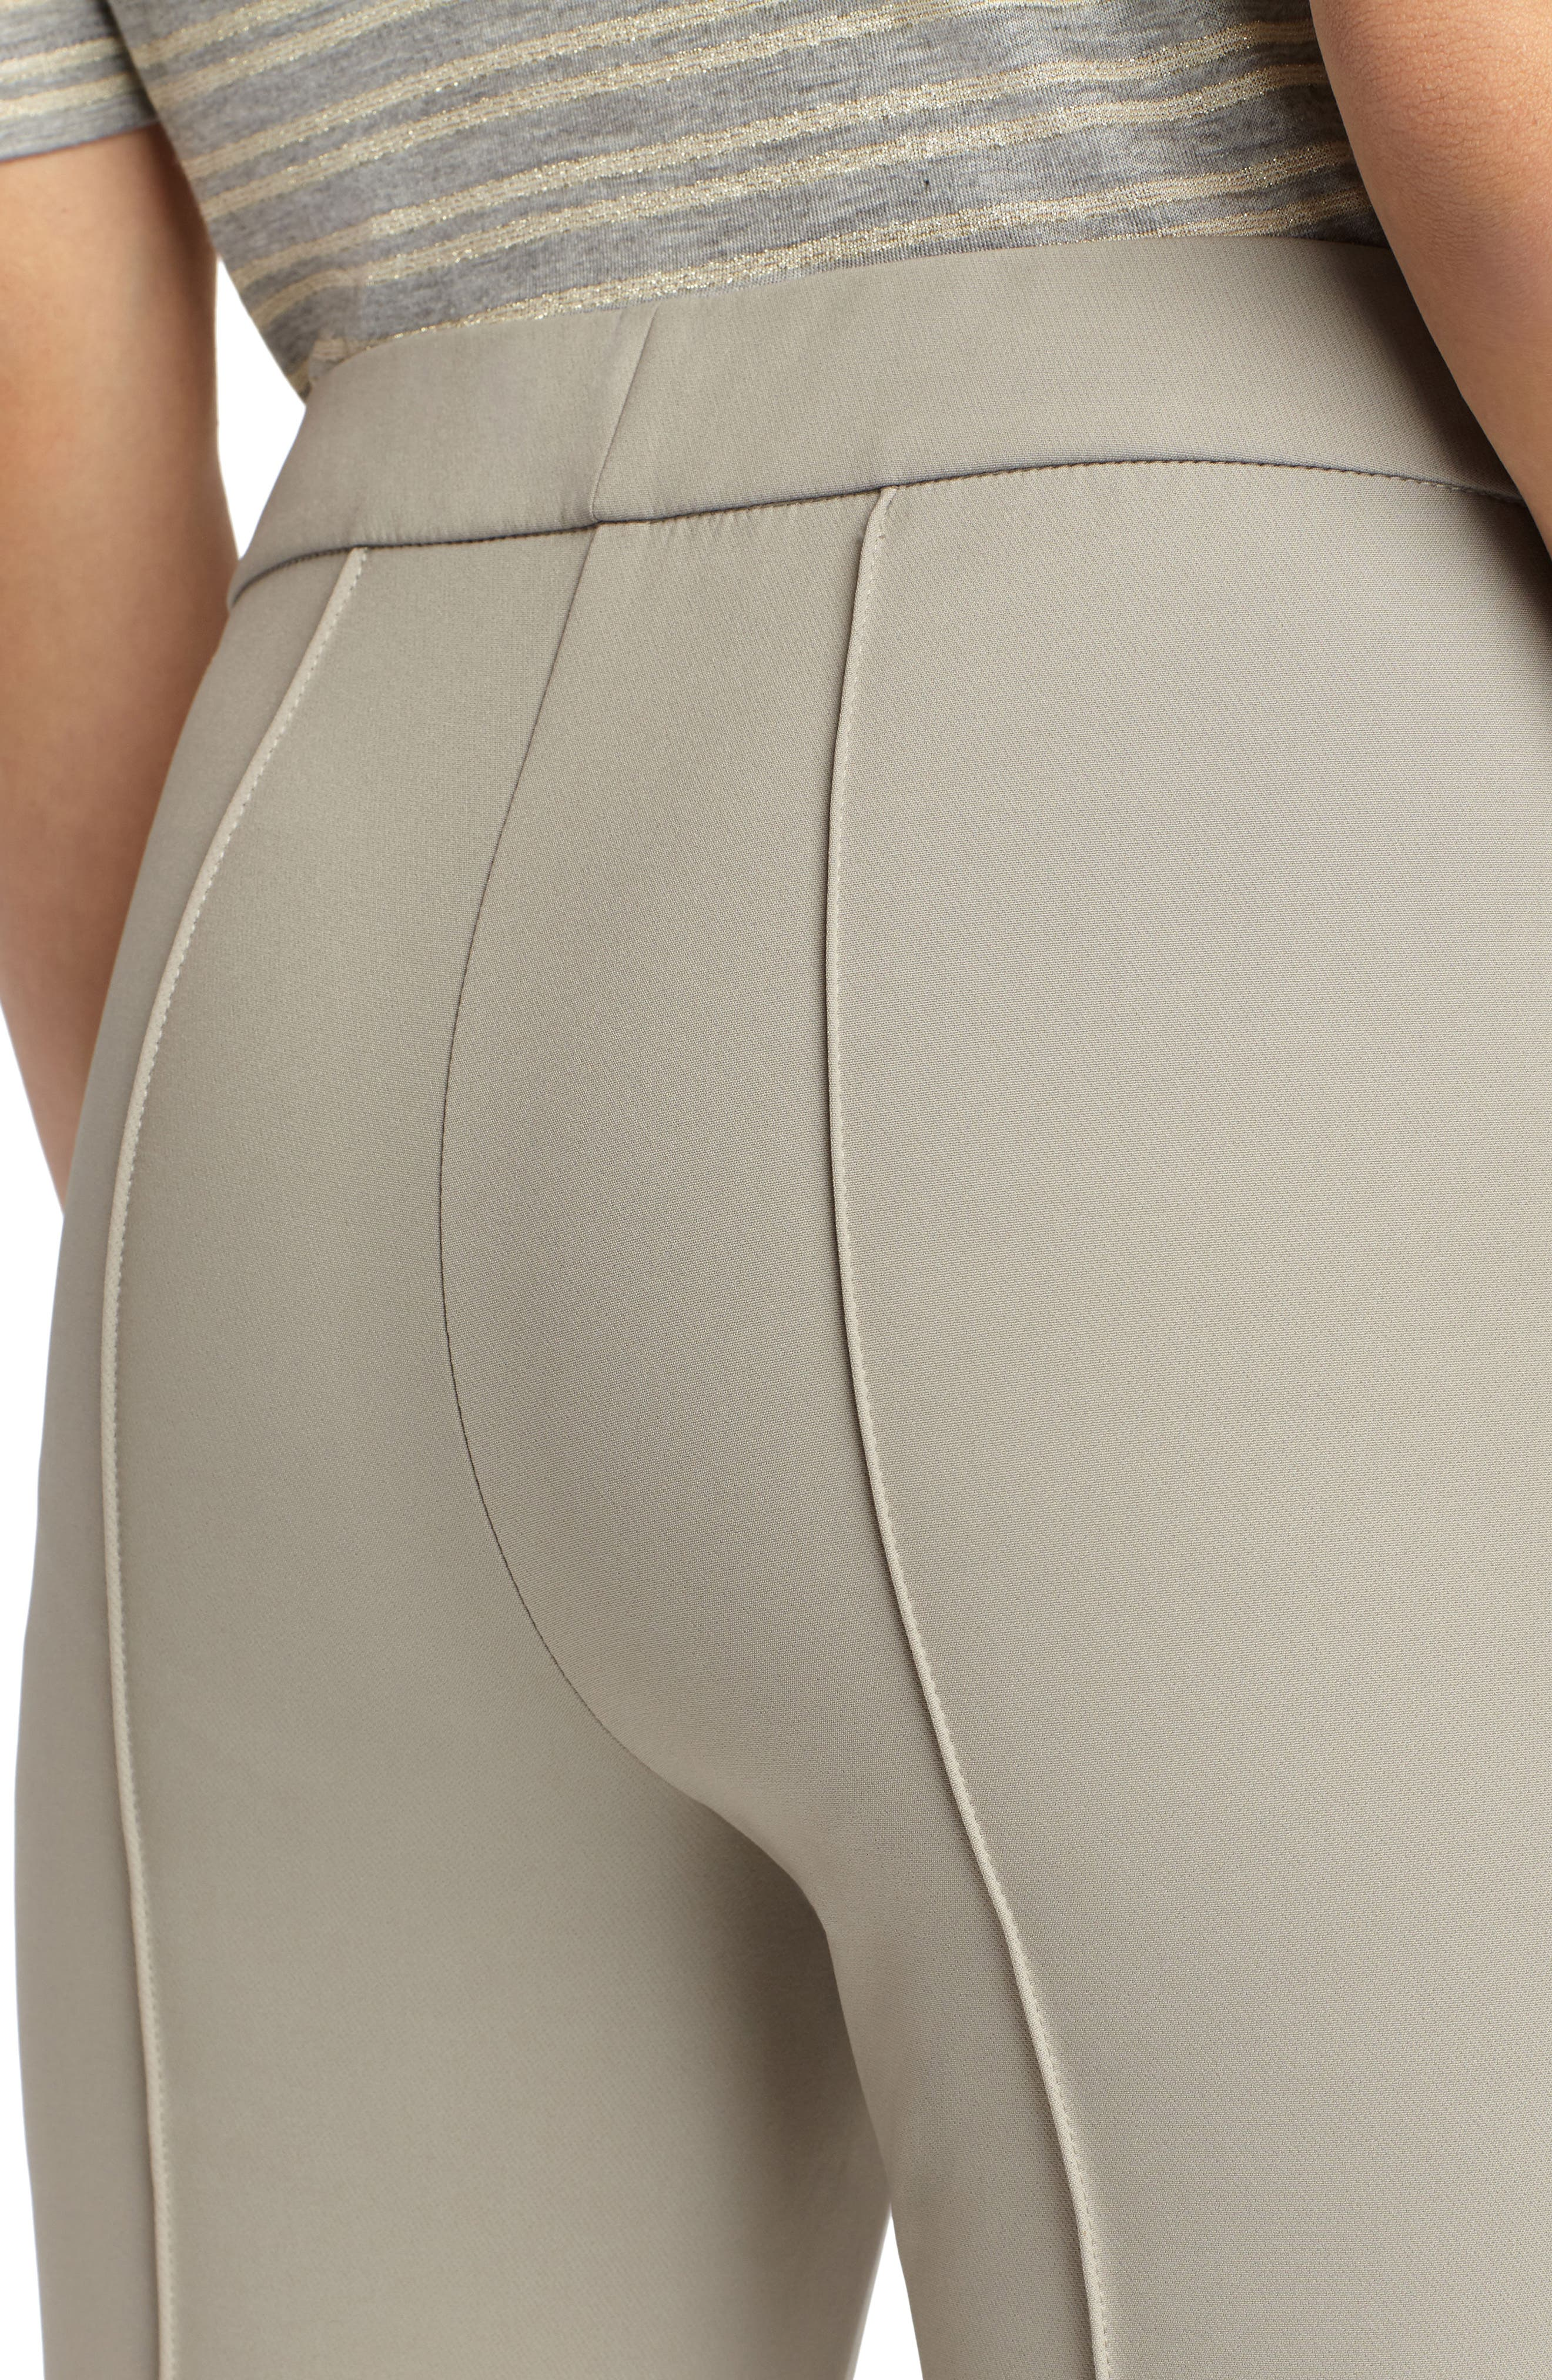 'Gramercy' Acclaimed Stretch Pants,                             Alternate thumbnail 4, color,                             PARTRIDGE